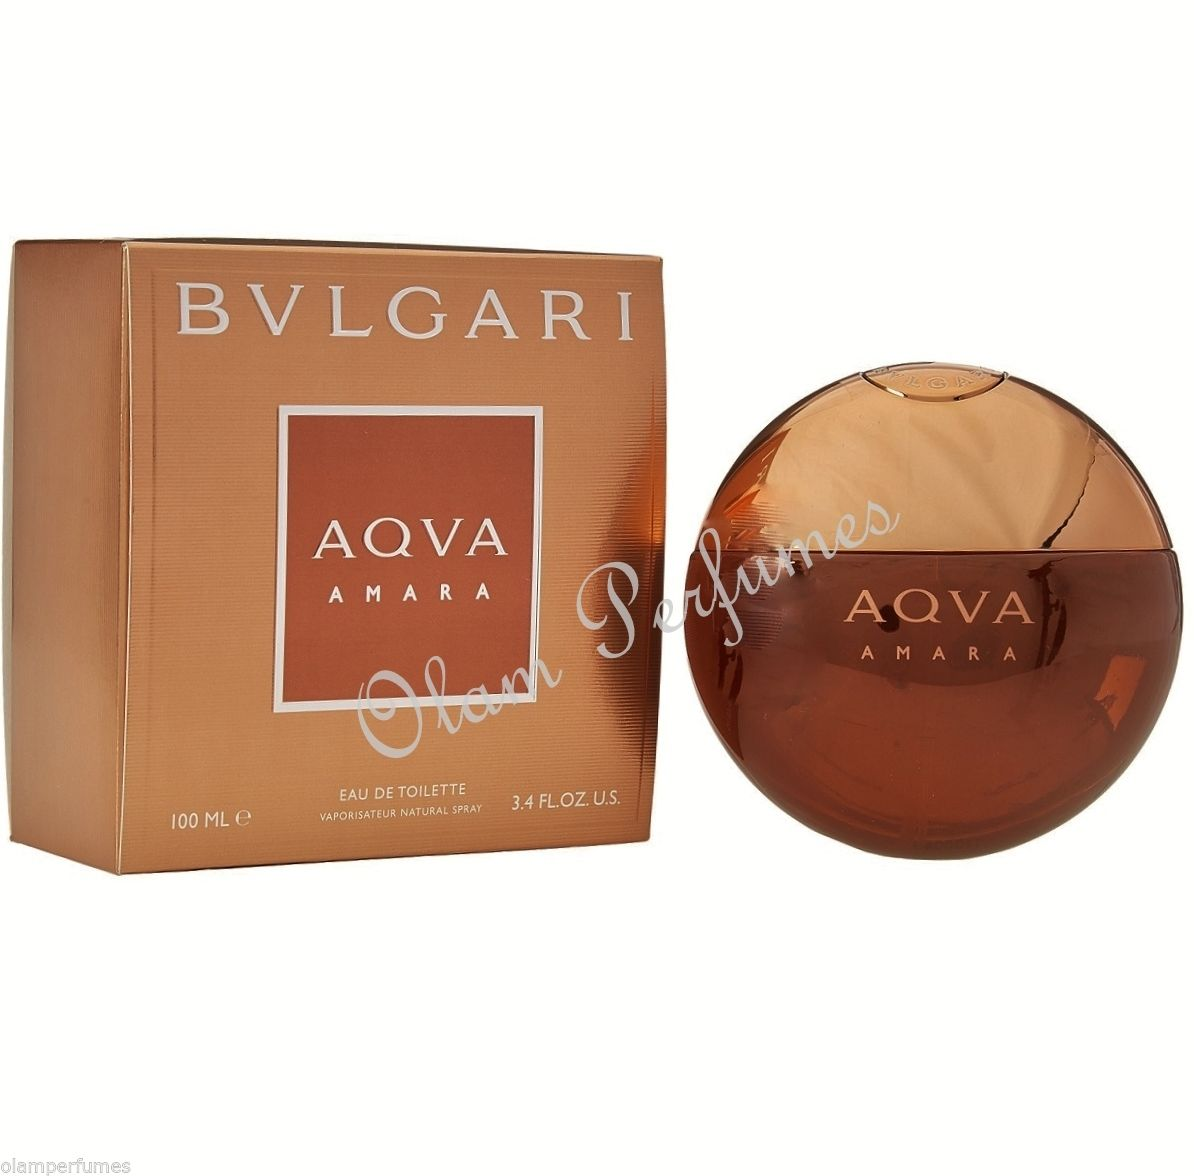 Bvlgari Aqva Amara For Men 3.4oz 100ml